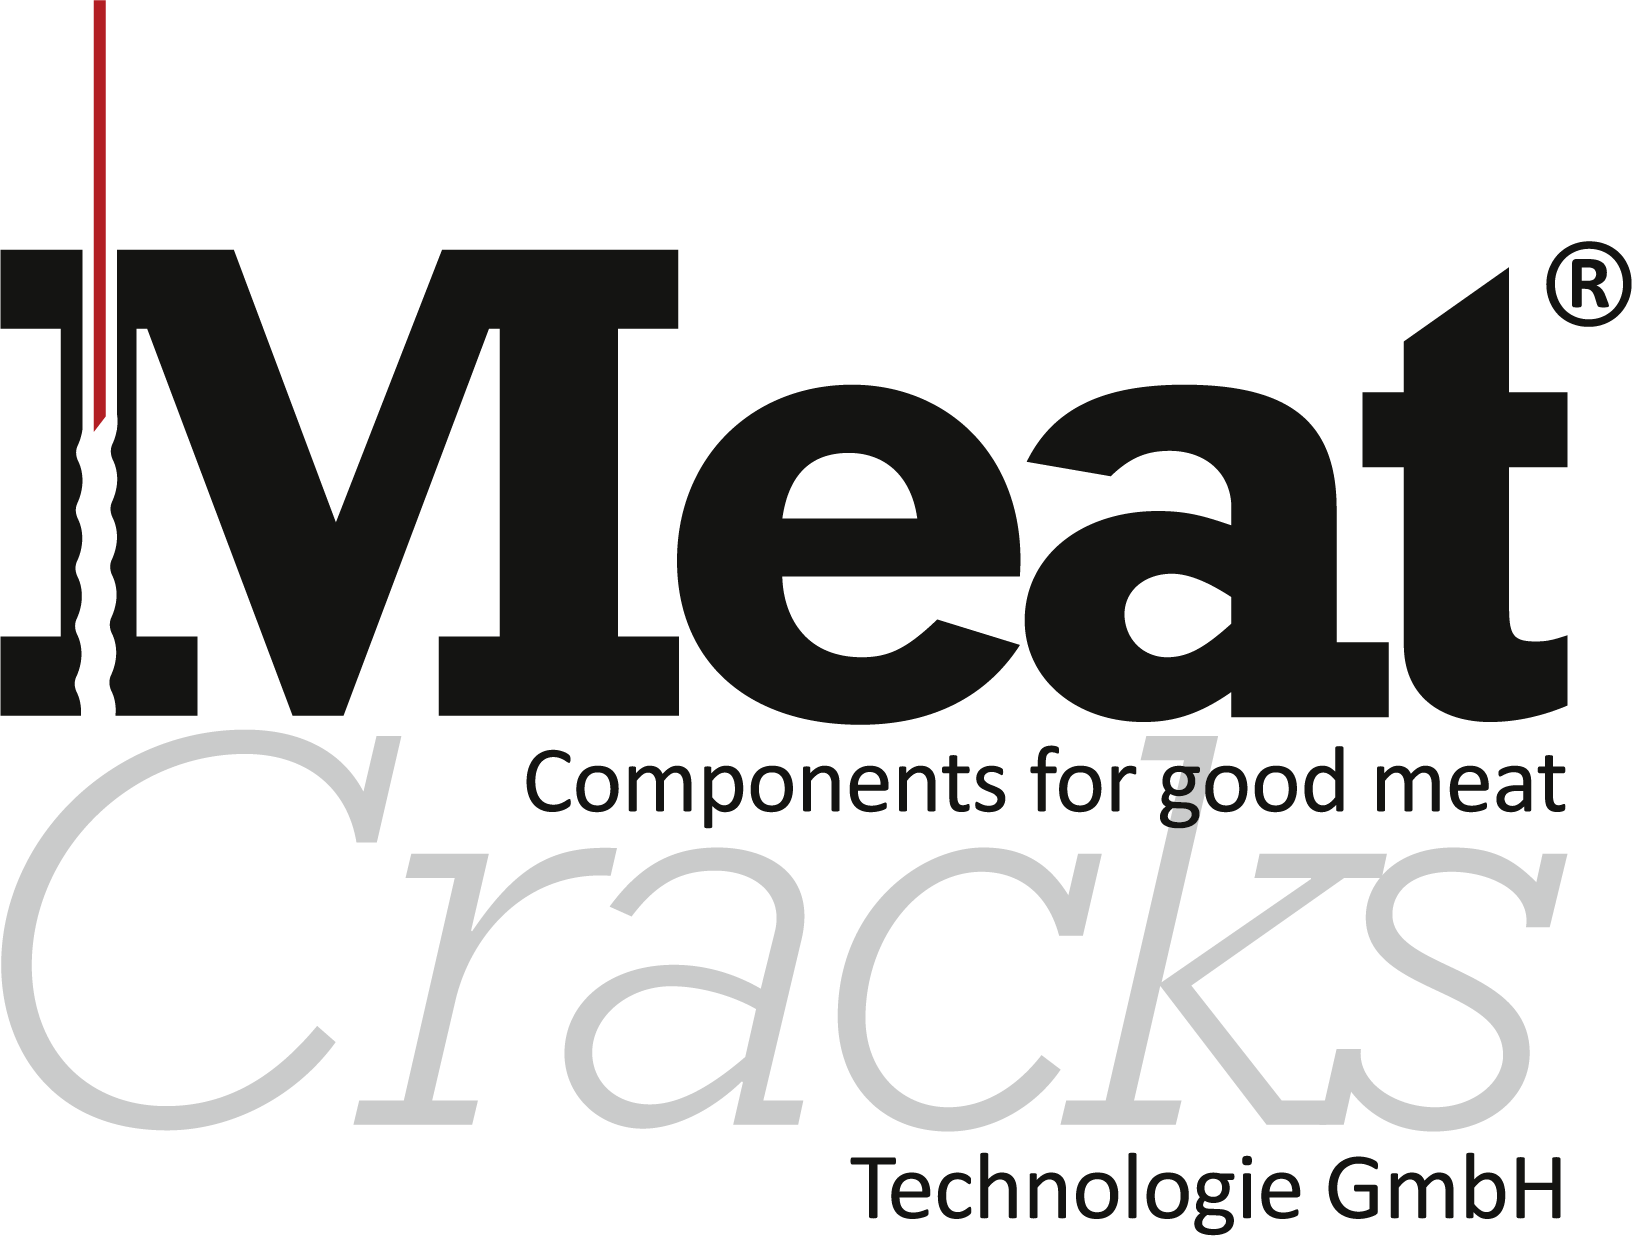 Meat Cracks Technologie GmbH